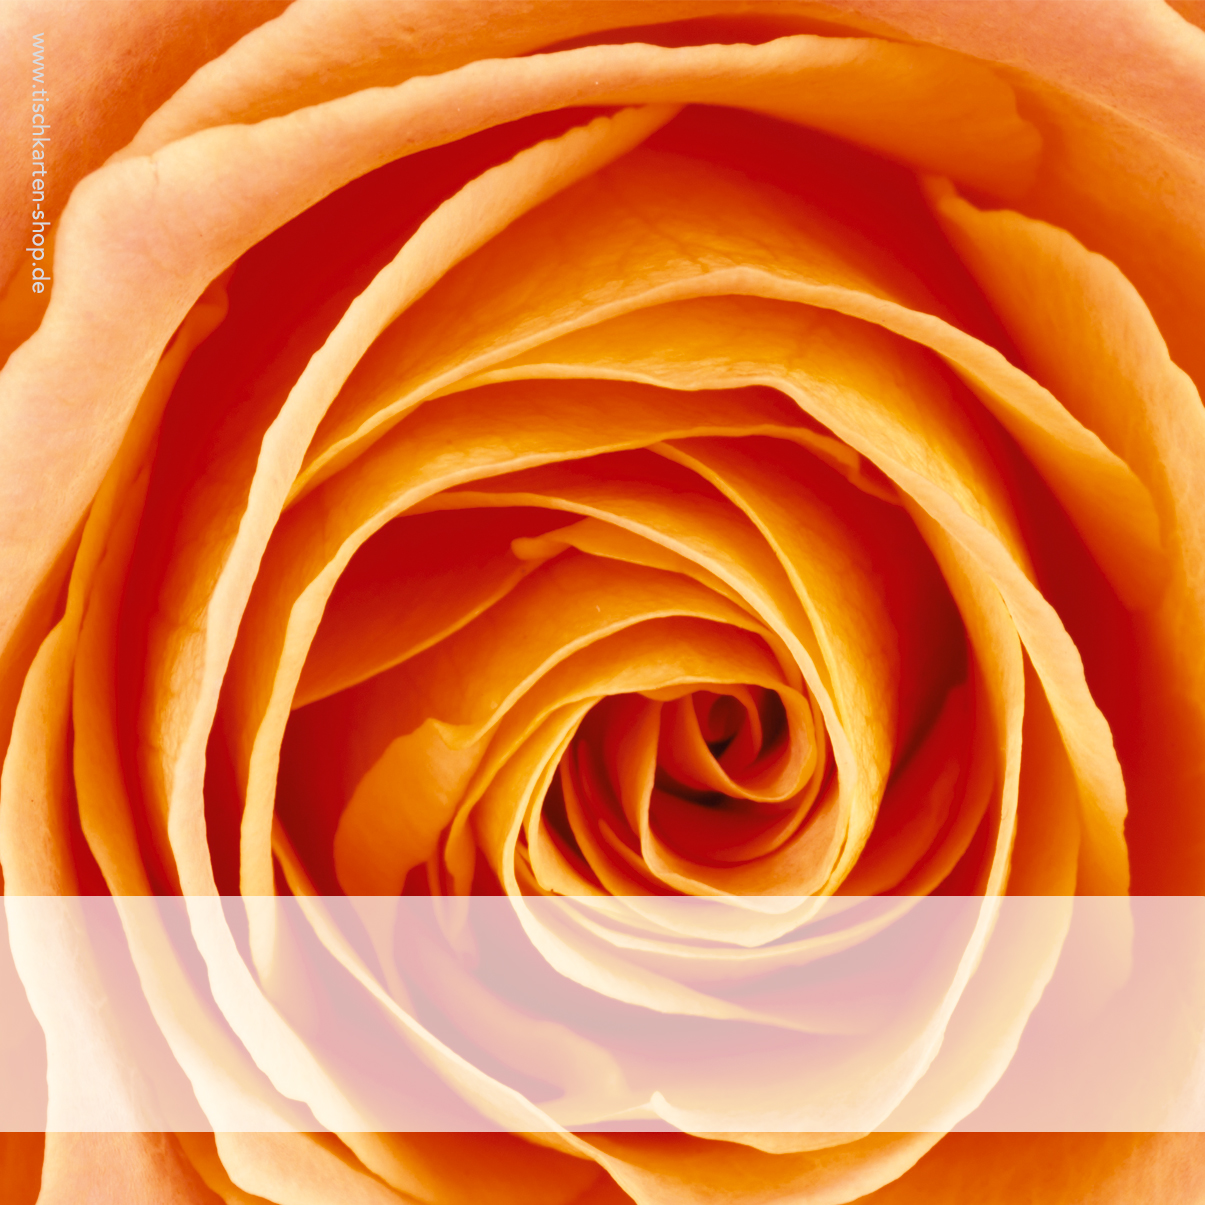 Tischkarte Tg 94 Rose Orange Tischkarten Shop